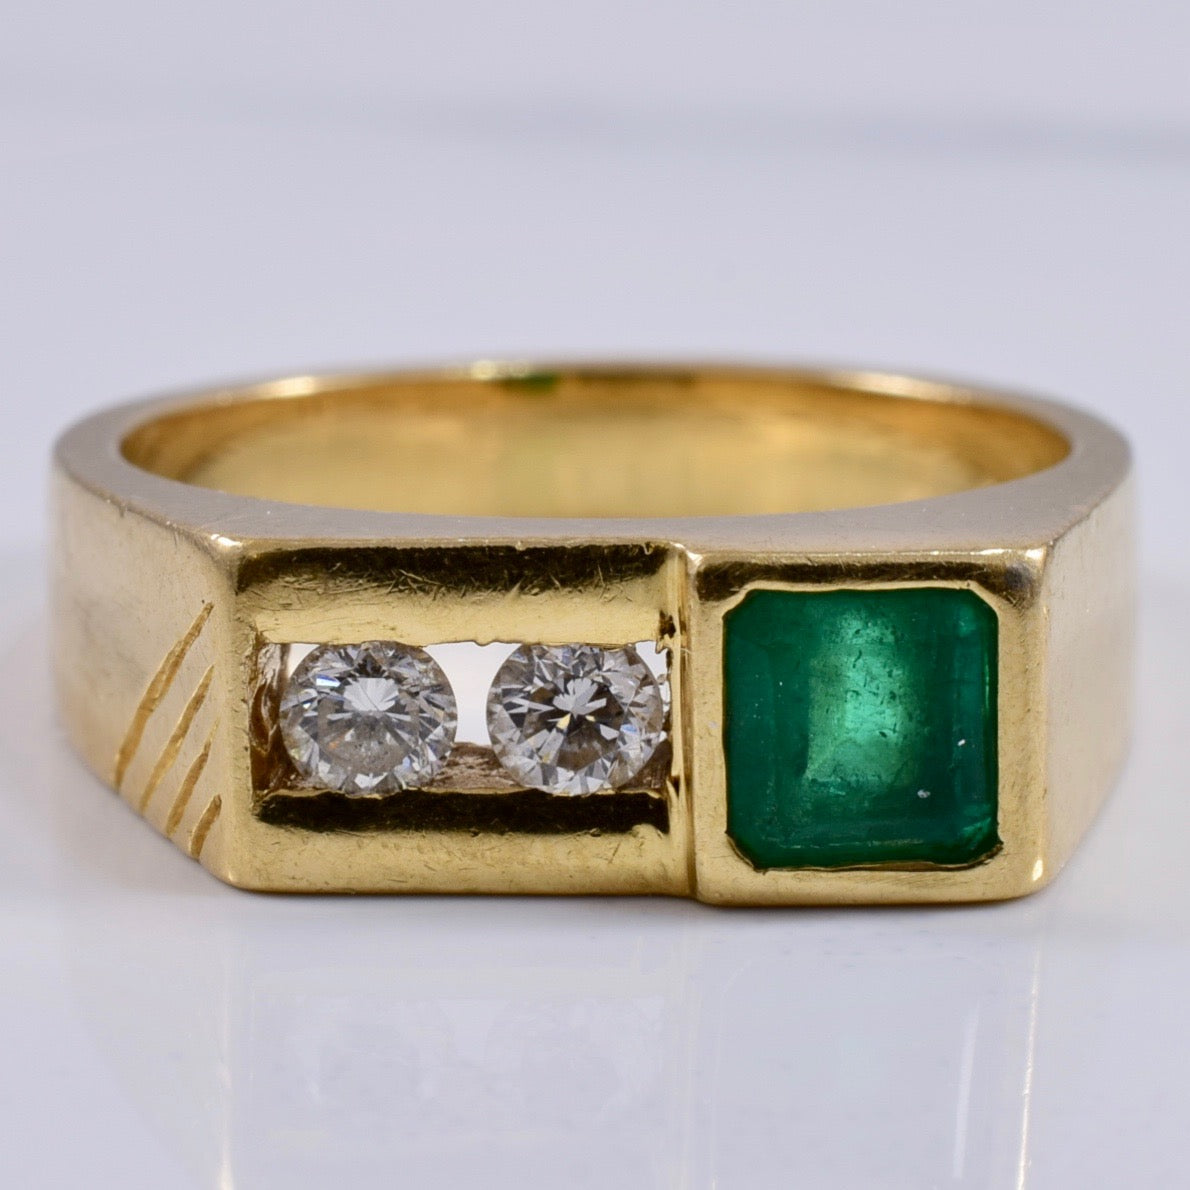 Bezel Set Emerald Ring with Channel Set Diamonds | 0.16ctw, 0.48ct | SZ 5.75 |